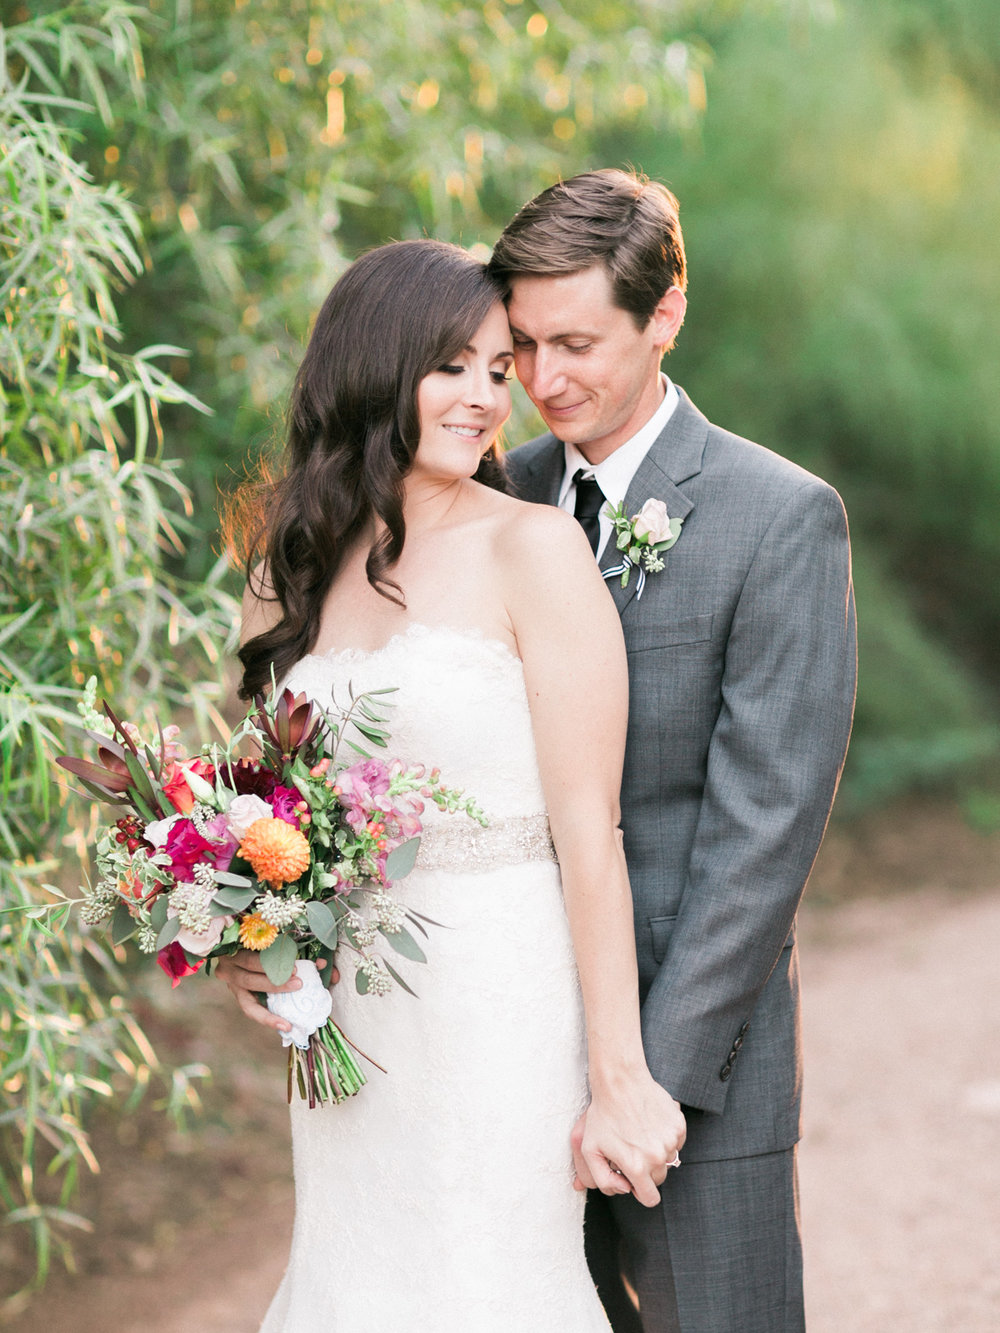 Gorgeous bride and groom portrait in gorgeous greenery and golden light captured by Phoenix wedding photographers, Betsy & John